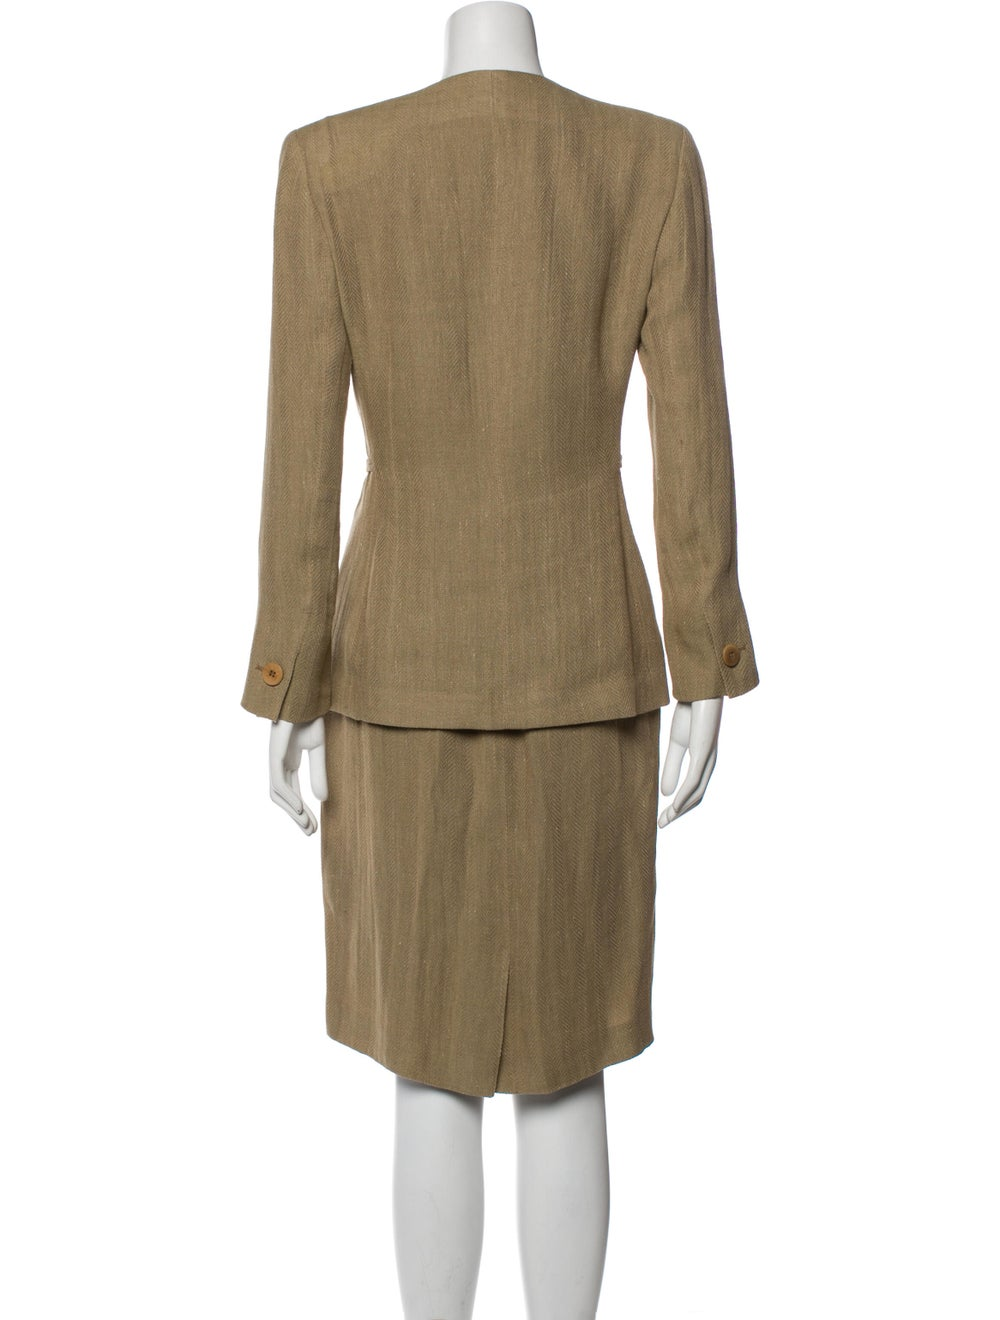 Giorgio Armani Linen Patterned Skirt Suit - image 3